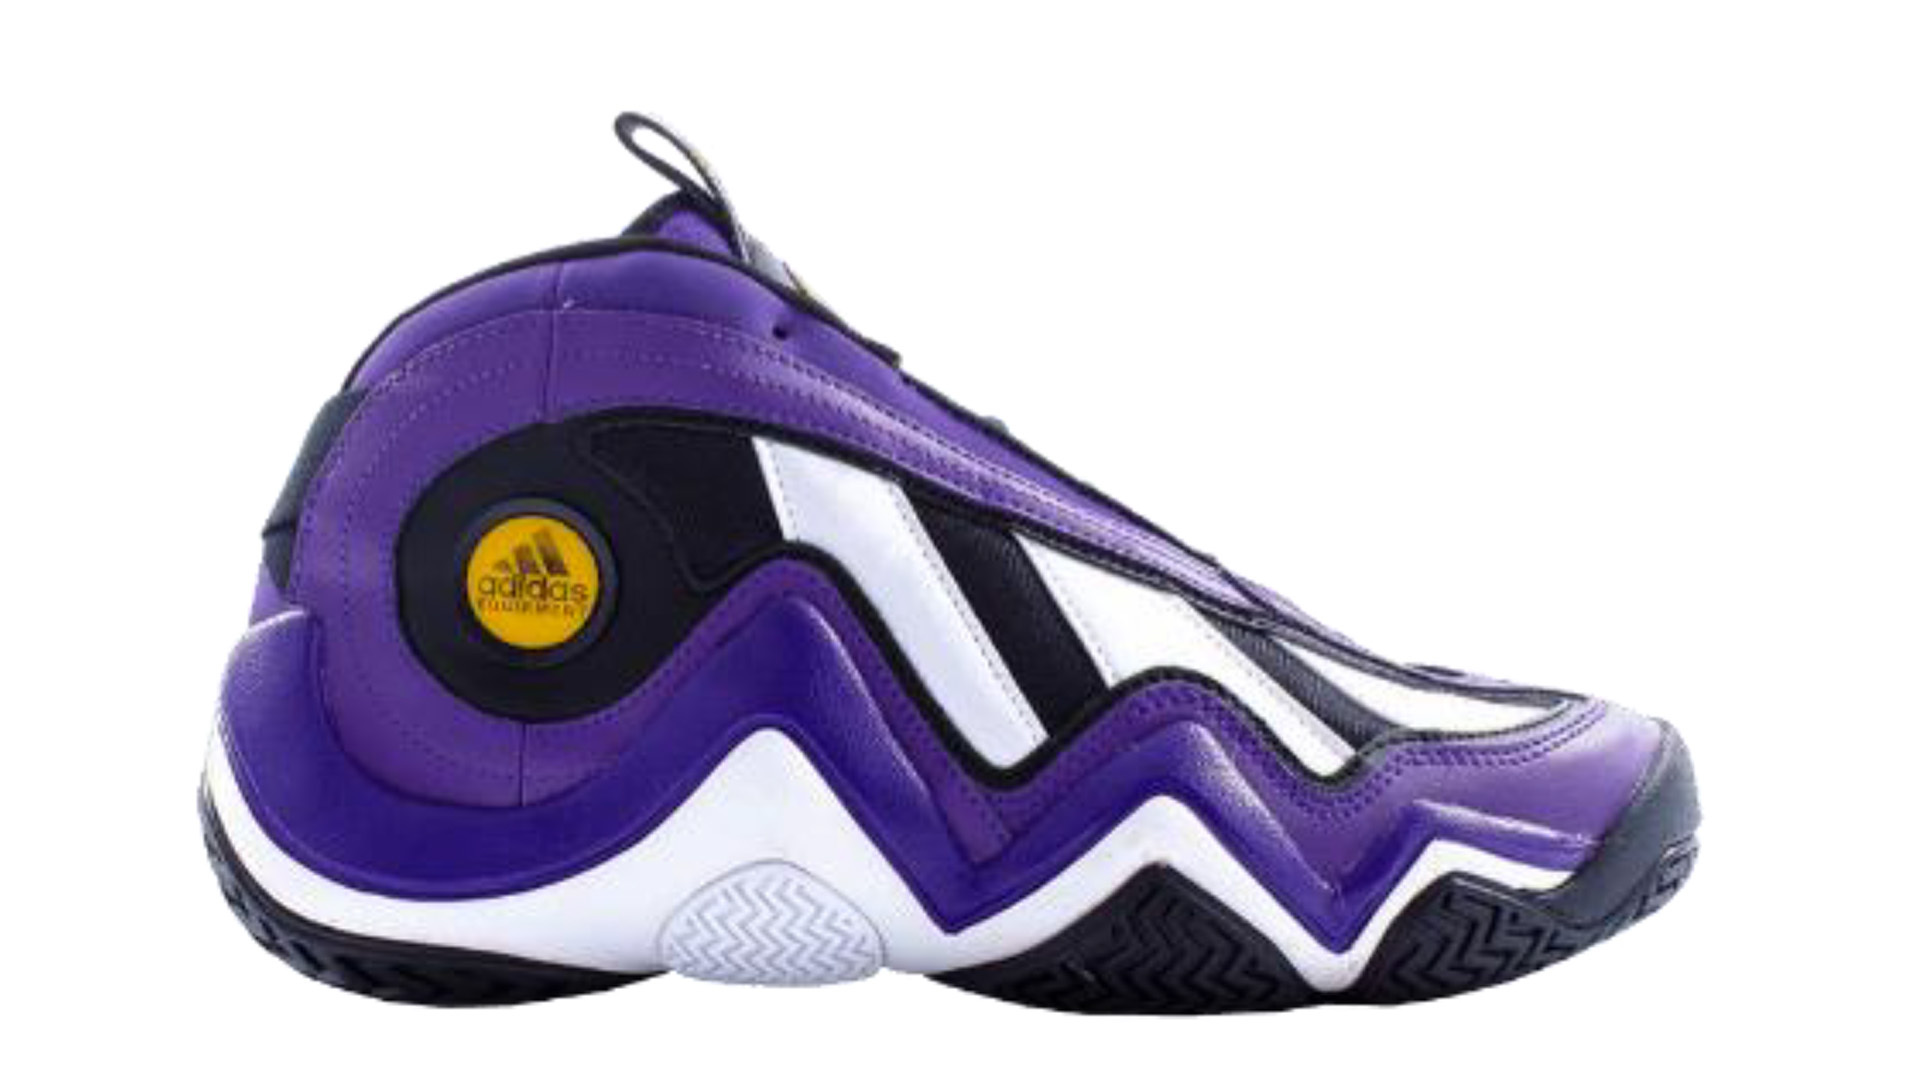 adidas crazy 97 lakers